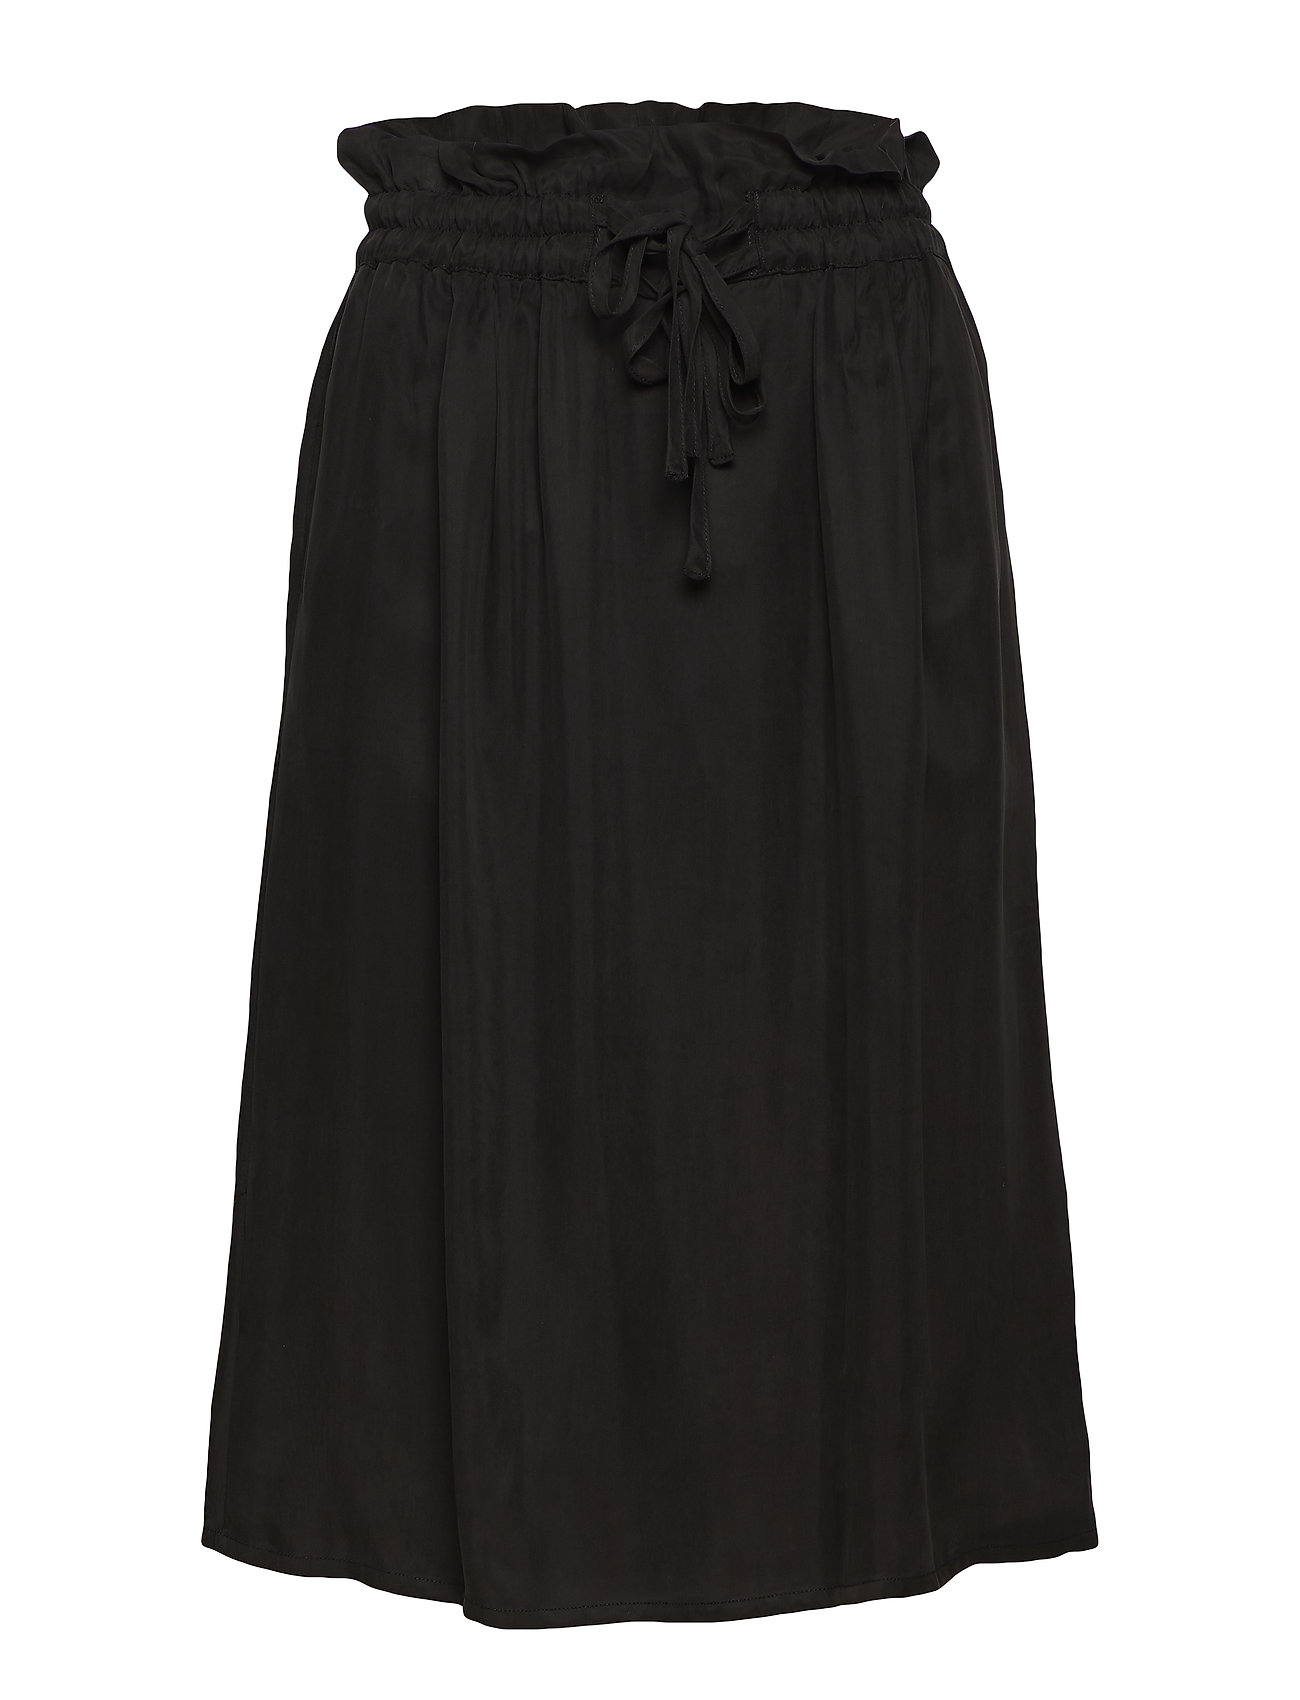 Scotch & Soda Cupro skirt with tie detail at waistband - ANTRA